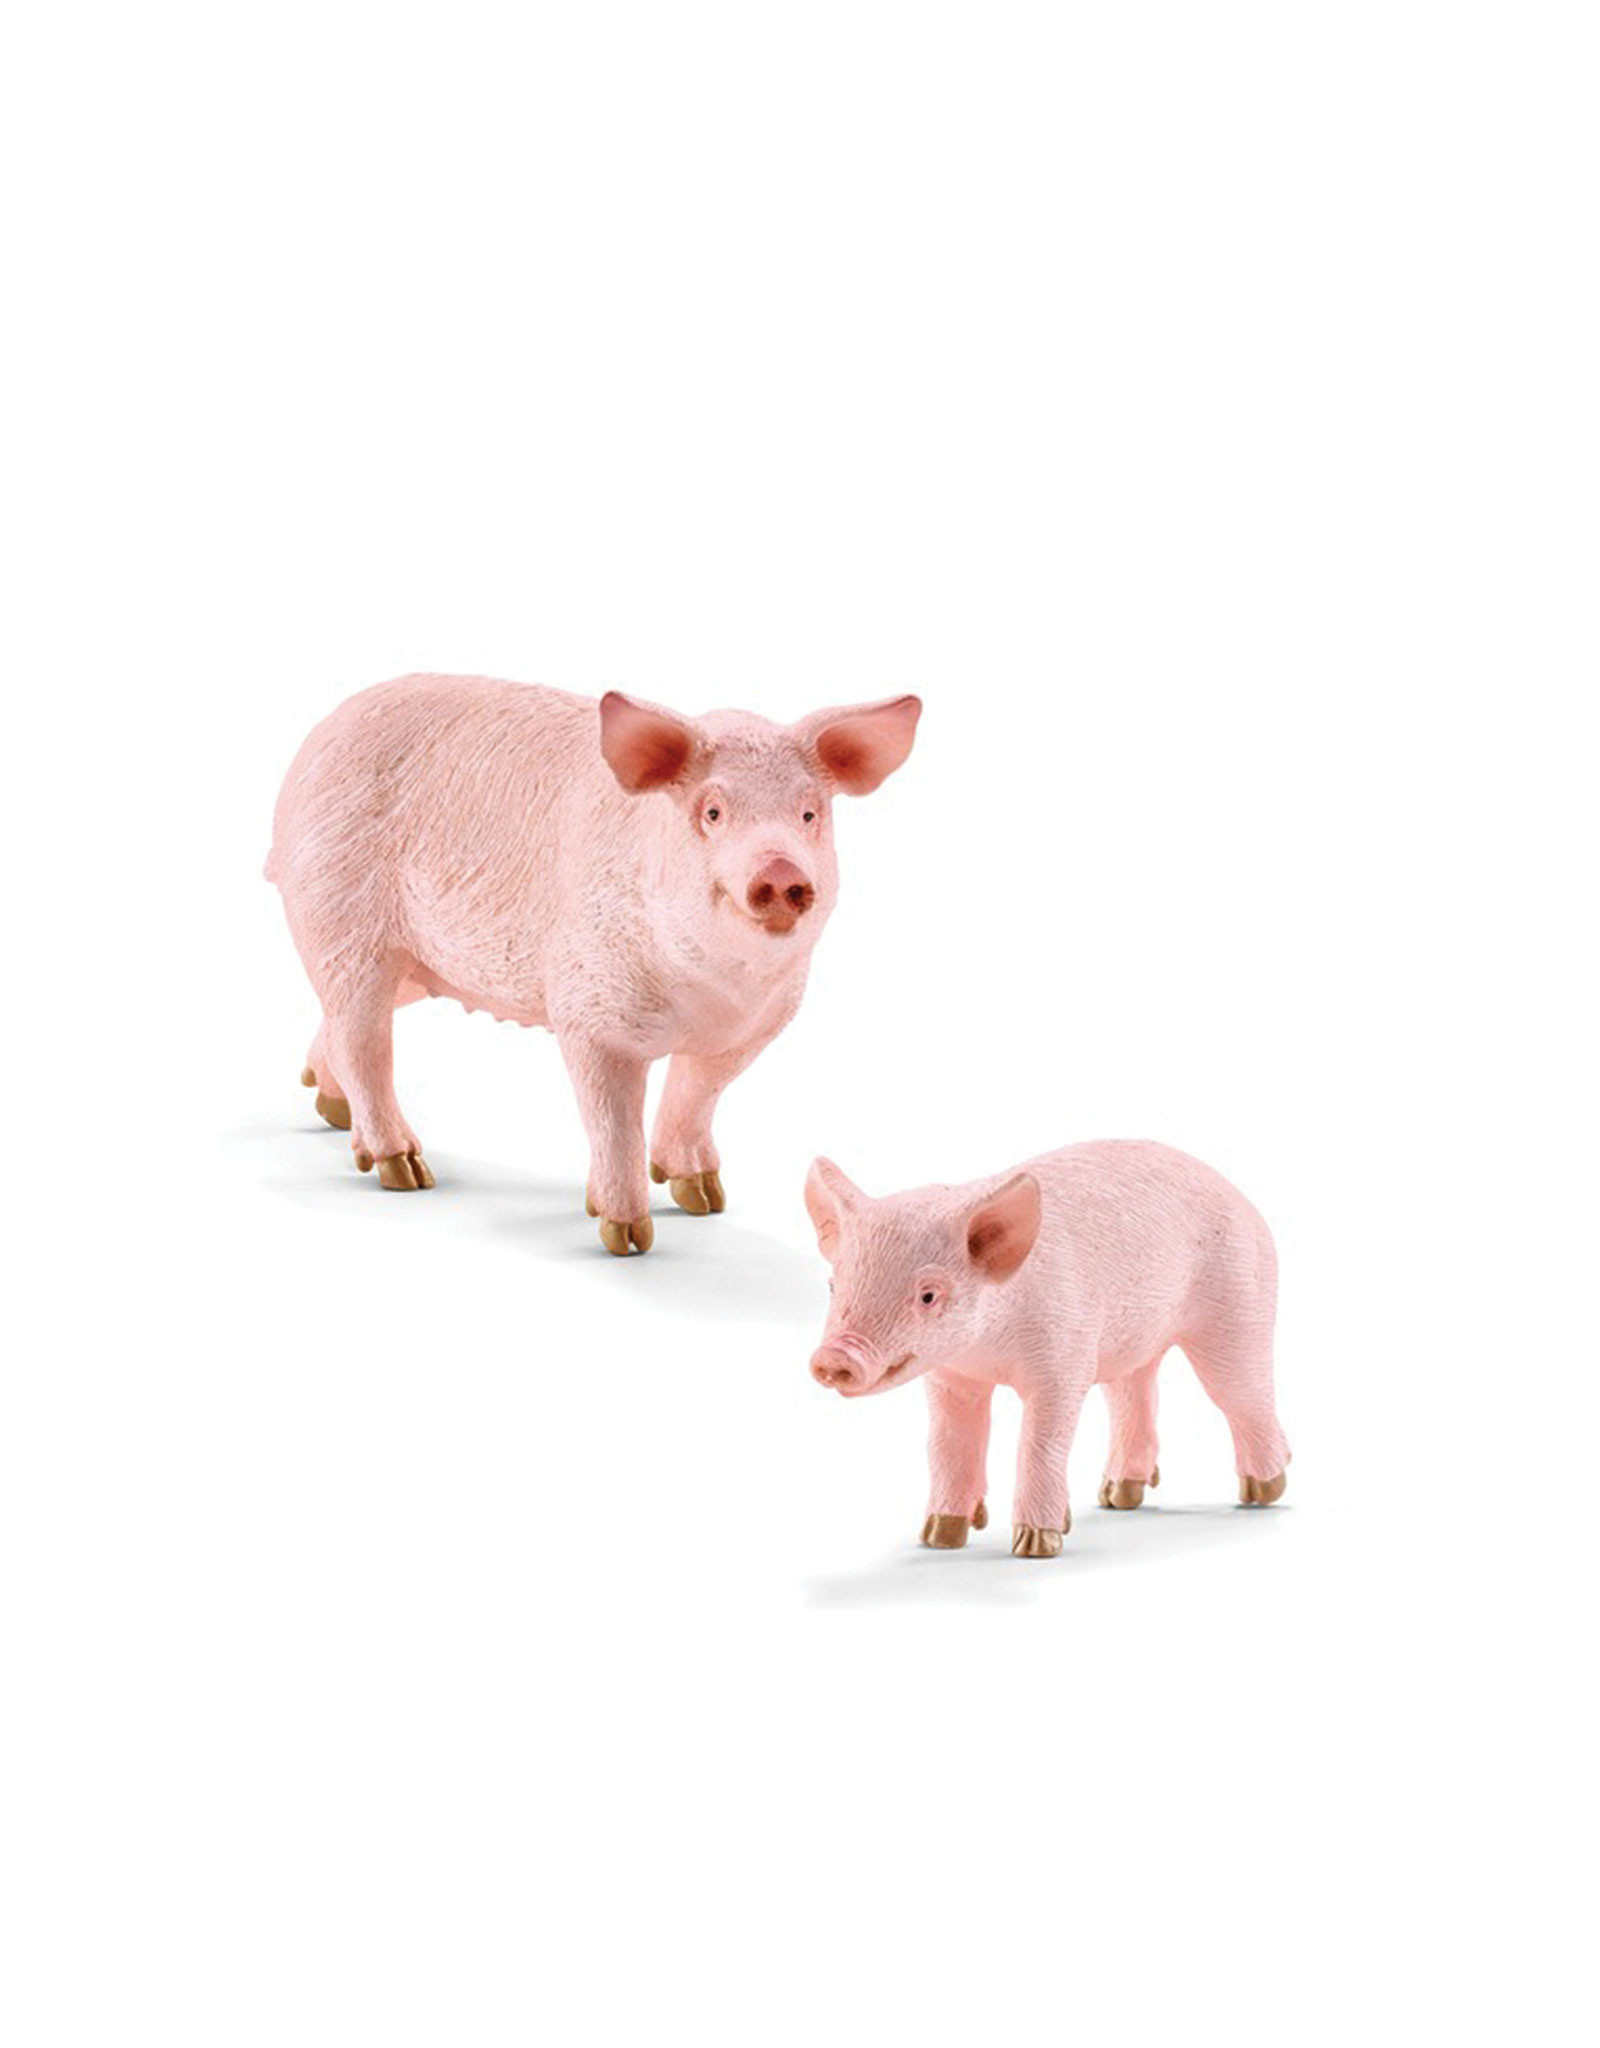 Schleich Animal - Porcelet debout